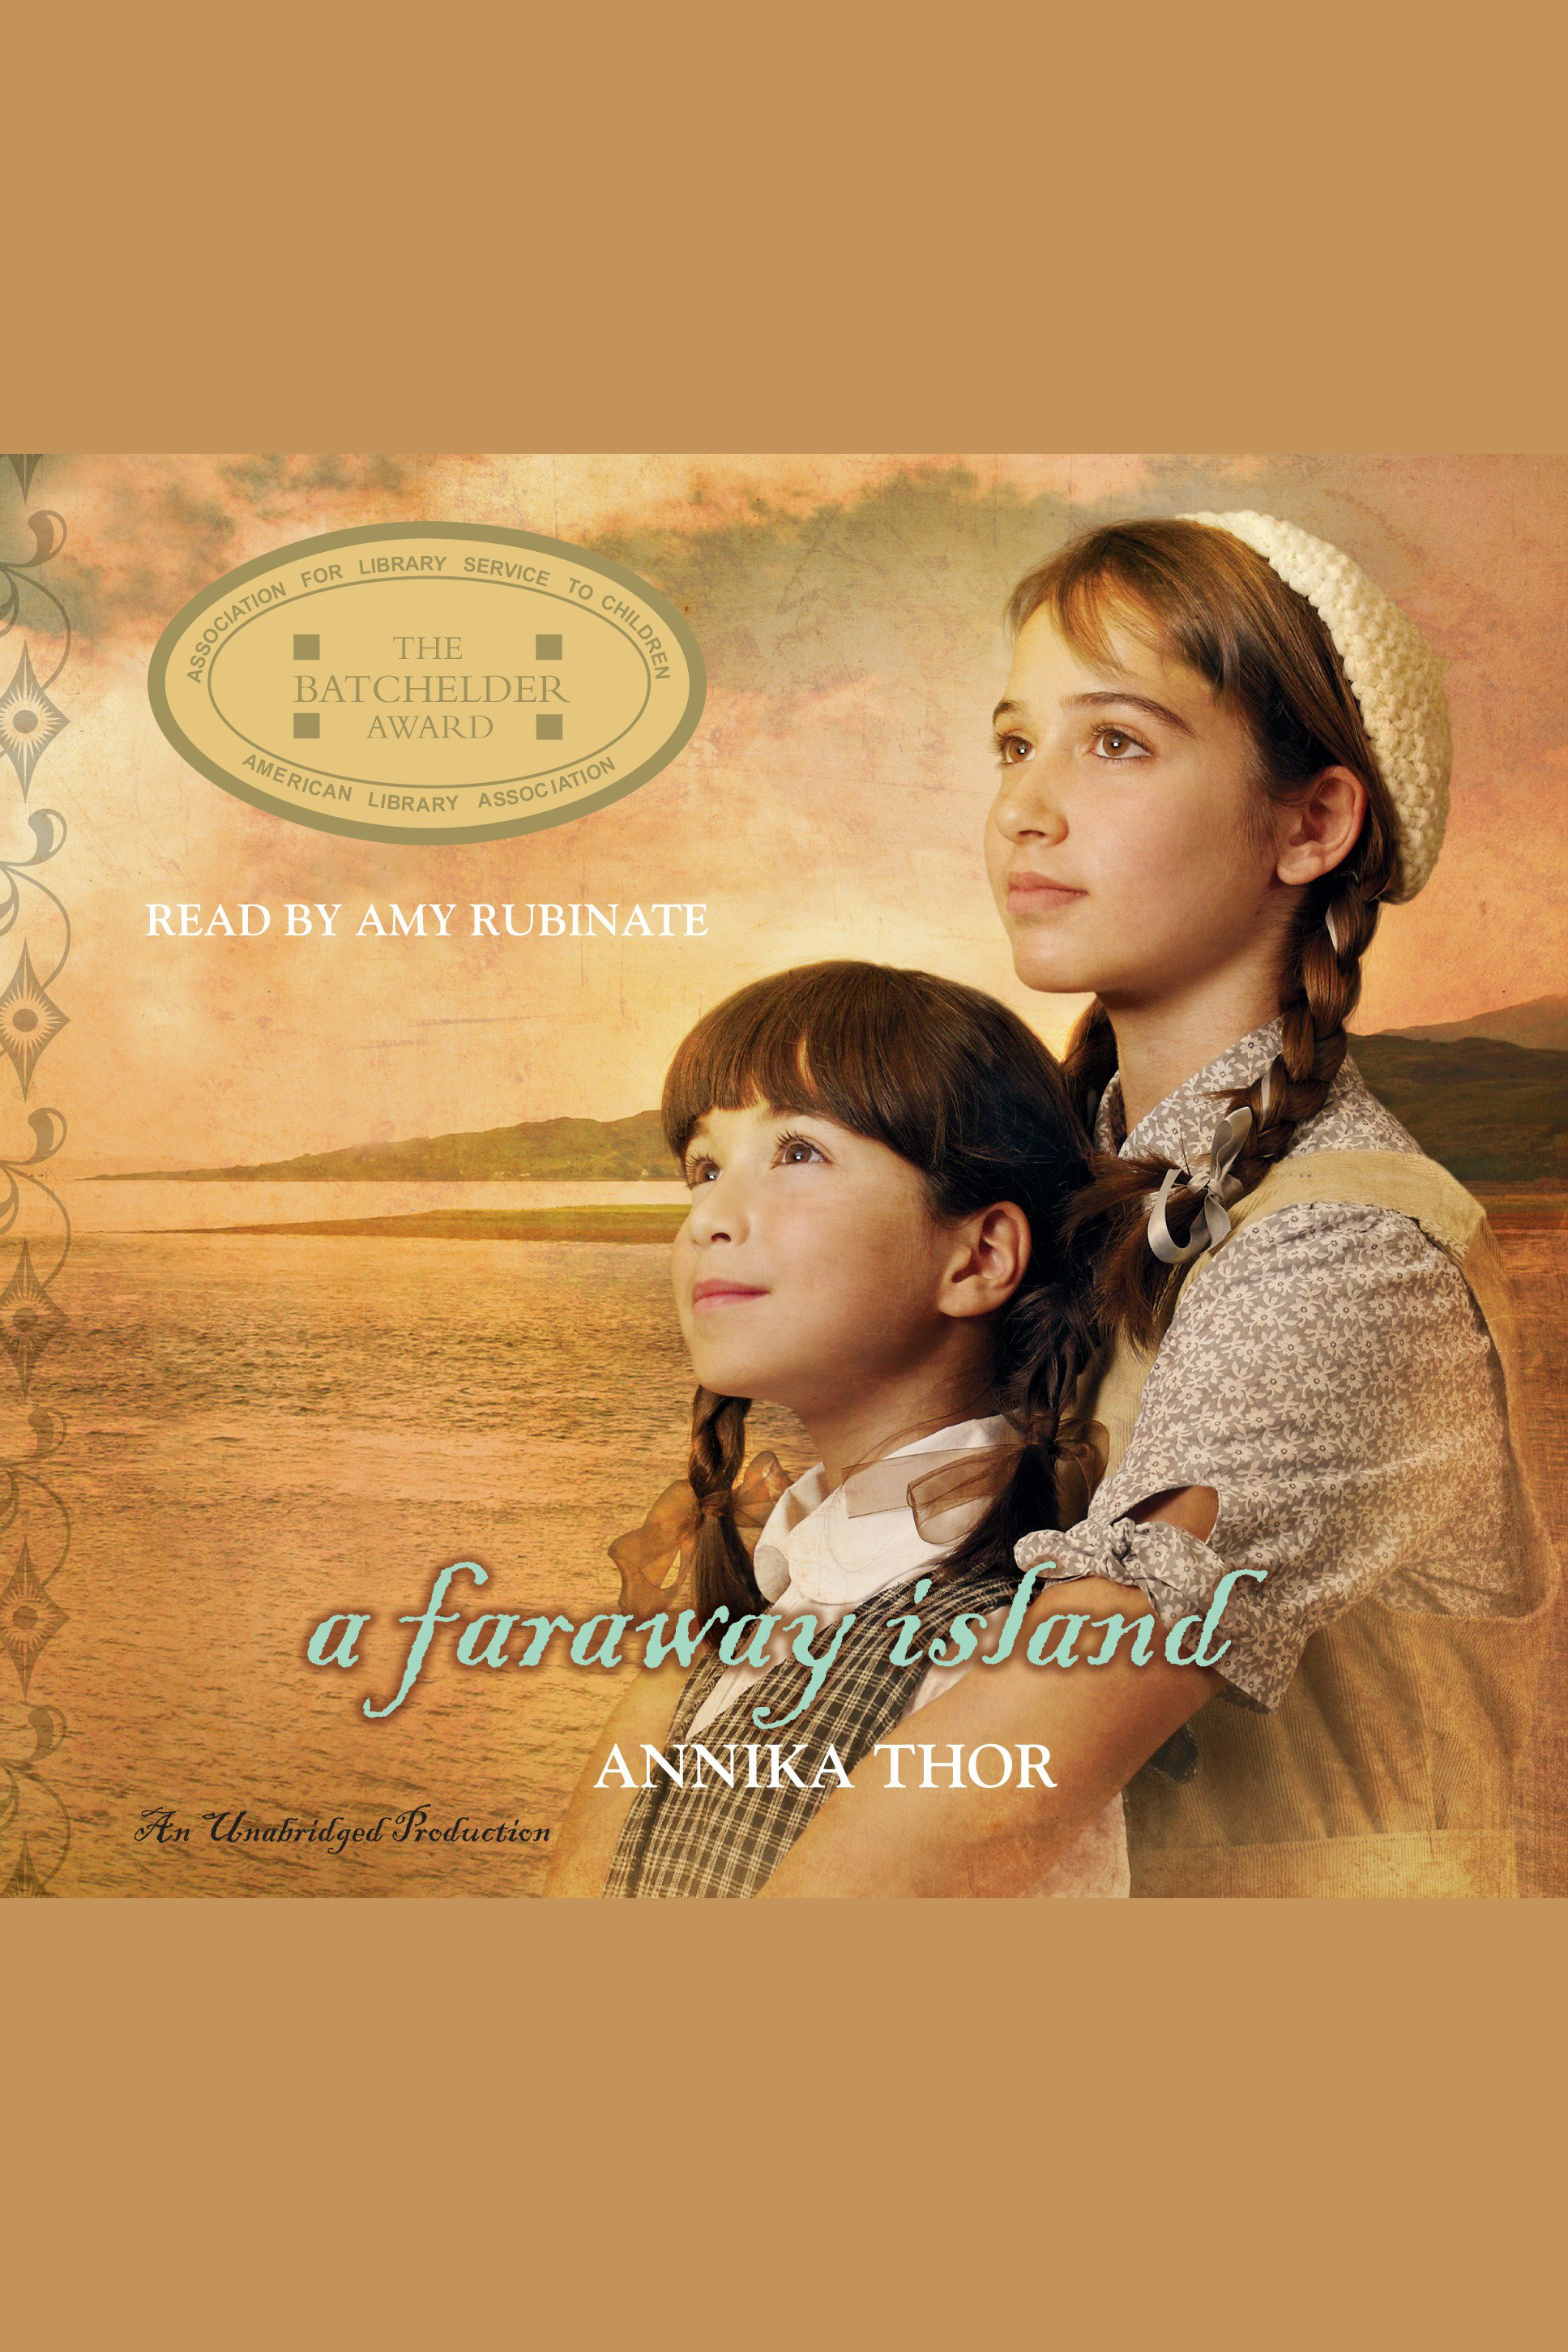 A faraway island cover image